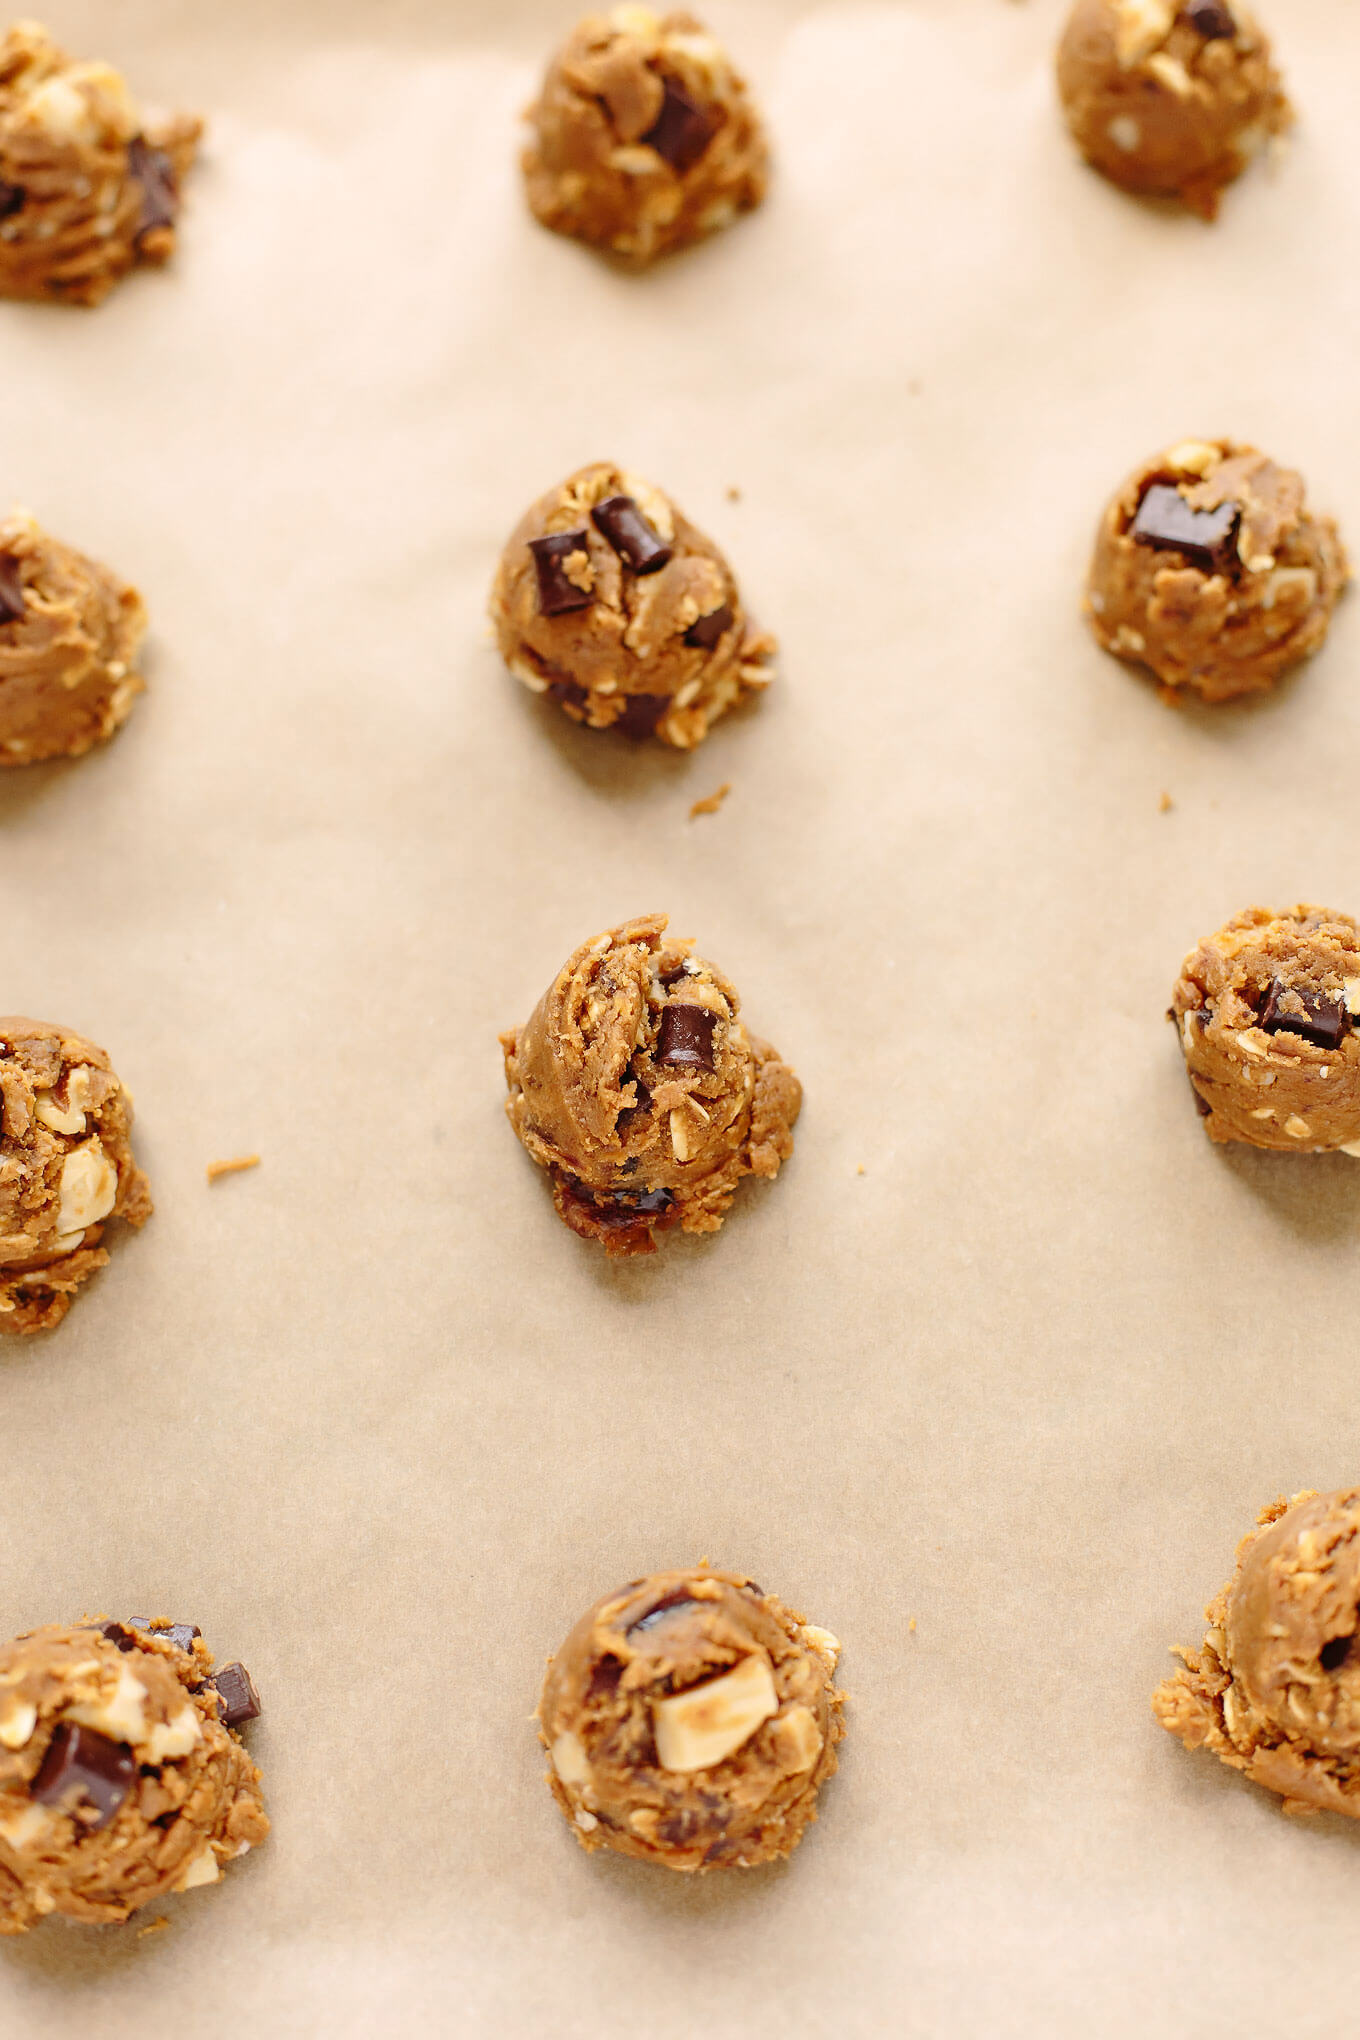 Peanut Butter Kitchen Sink Cookies | Vegan, Gluten-Free